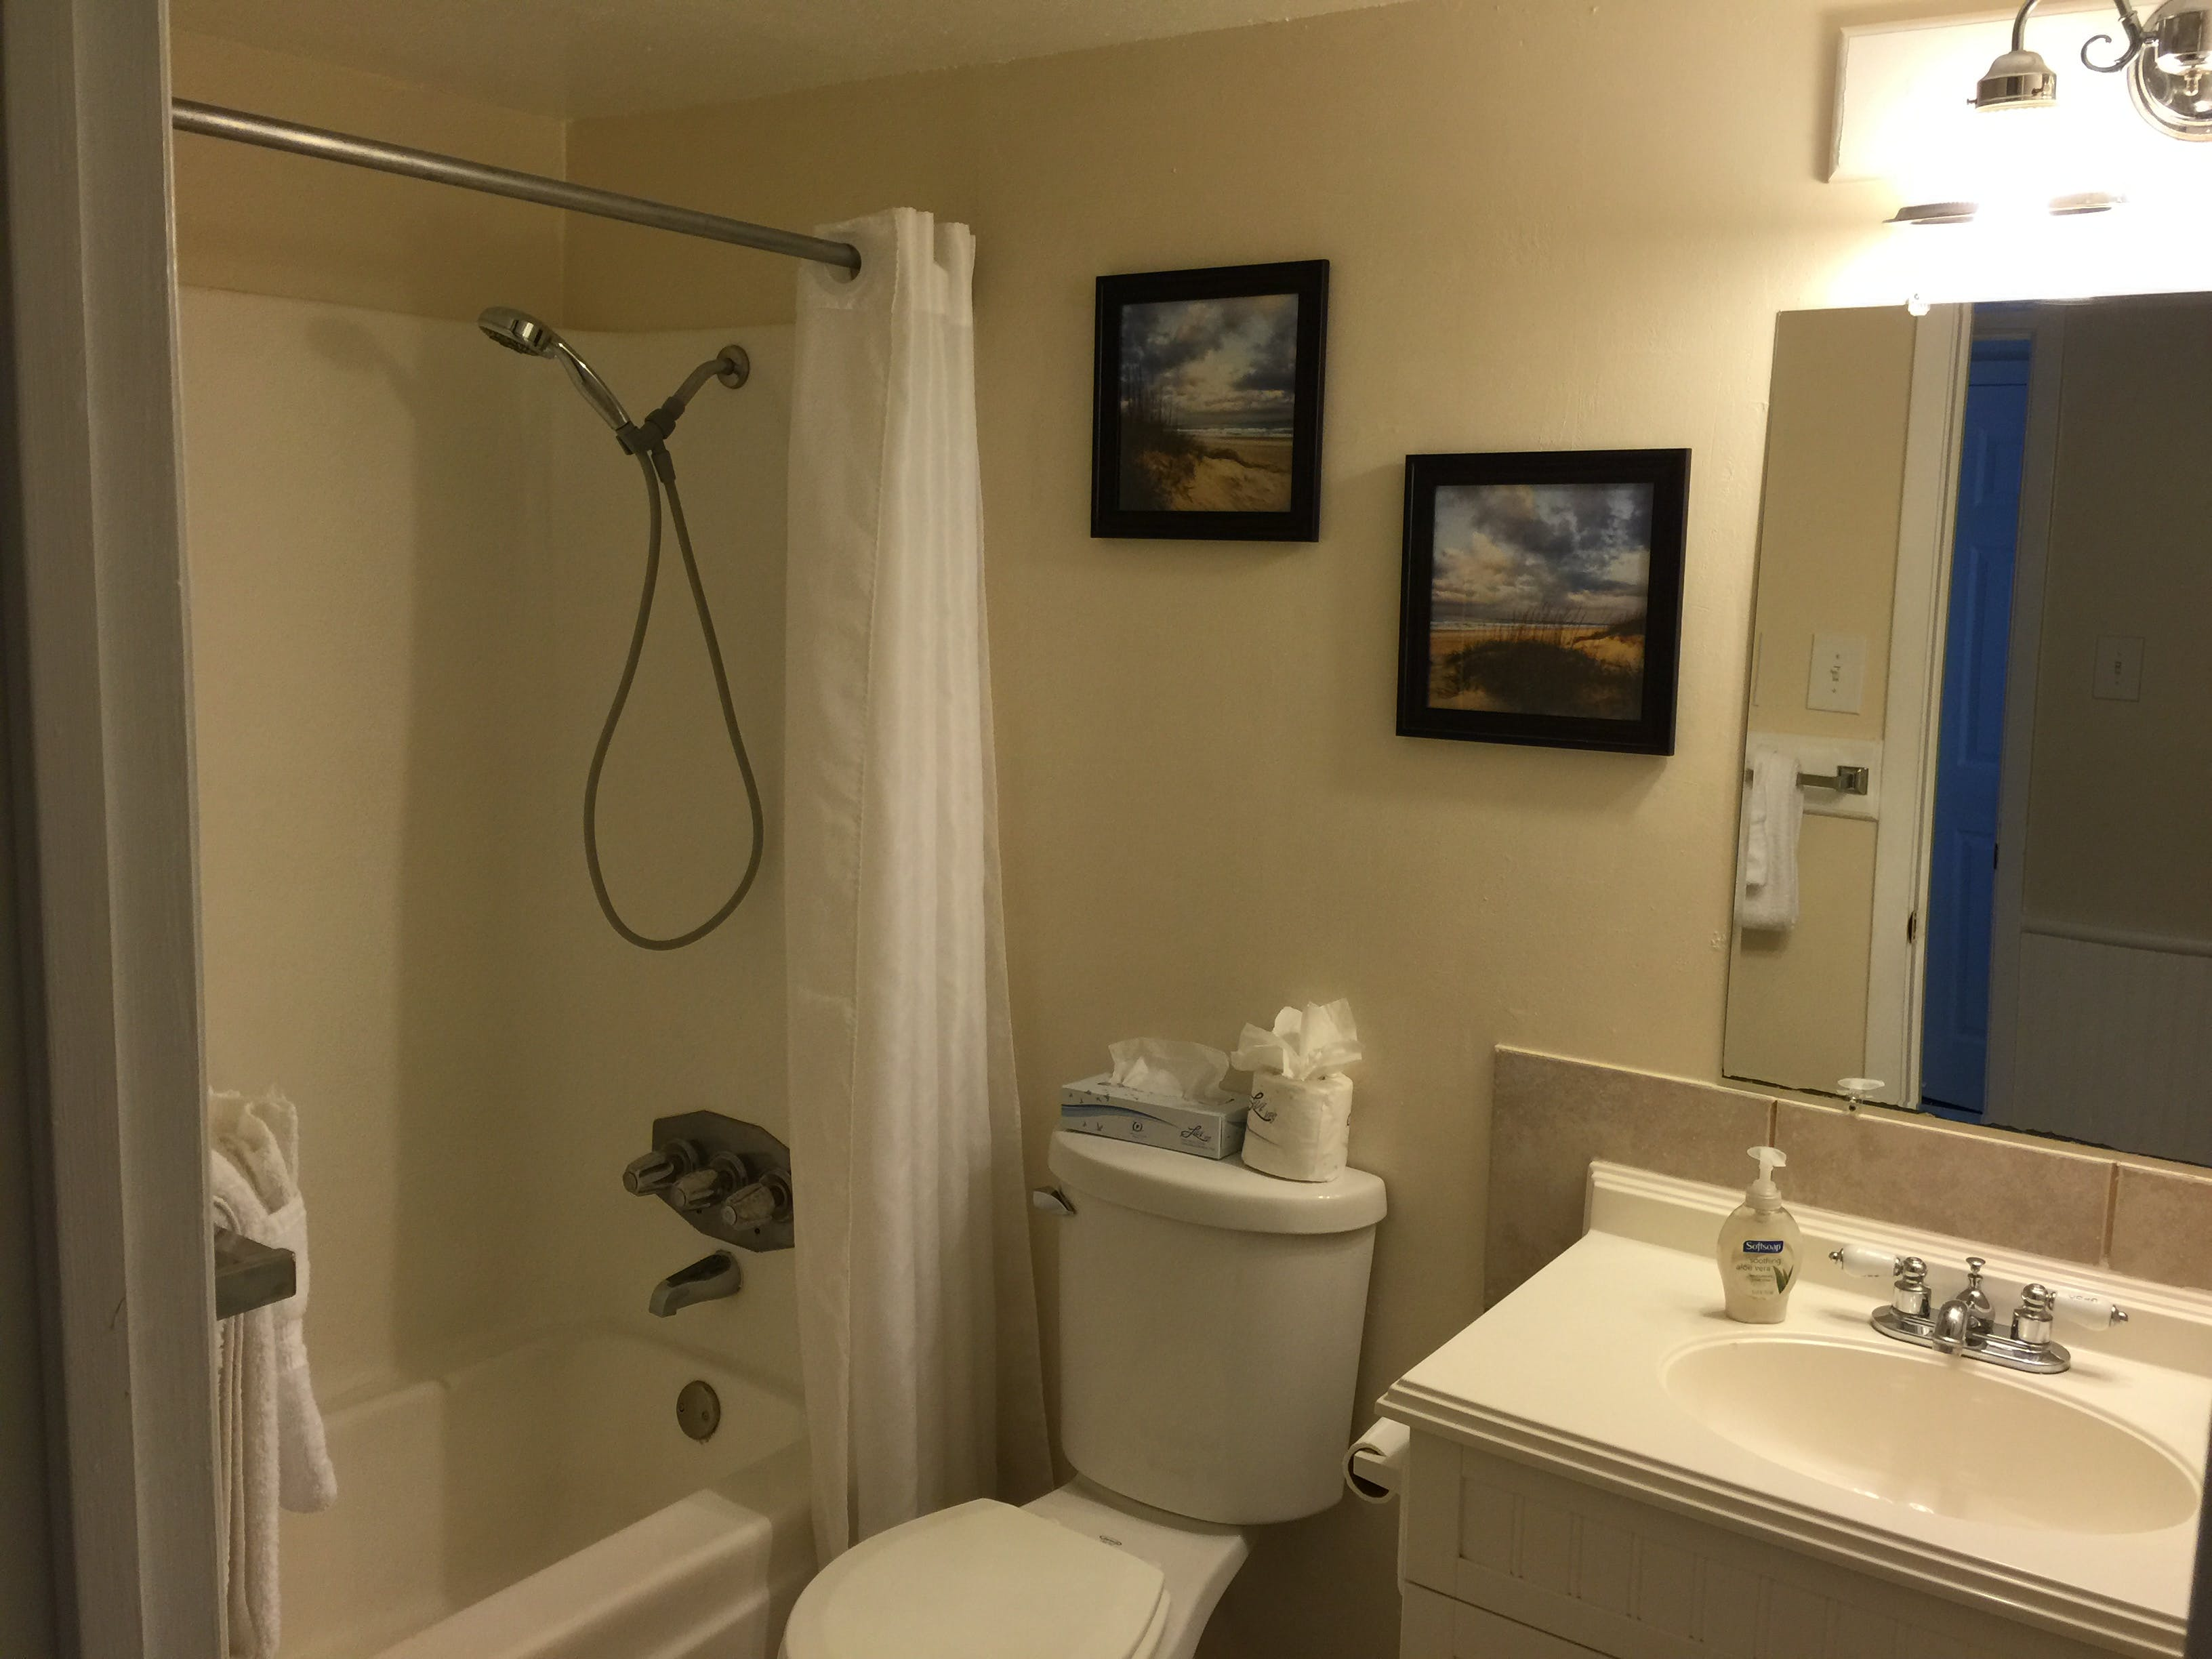 3BR Townhouse - Master Bathroom (private)